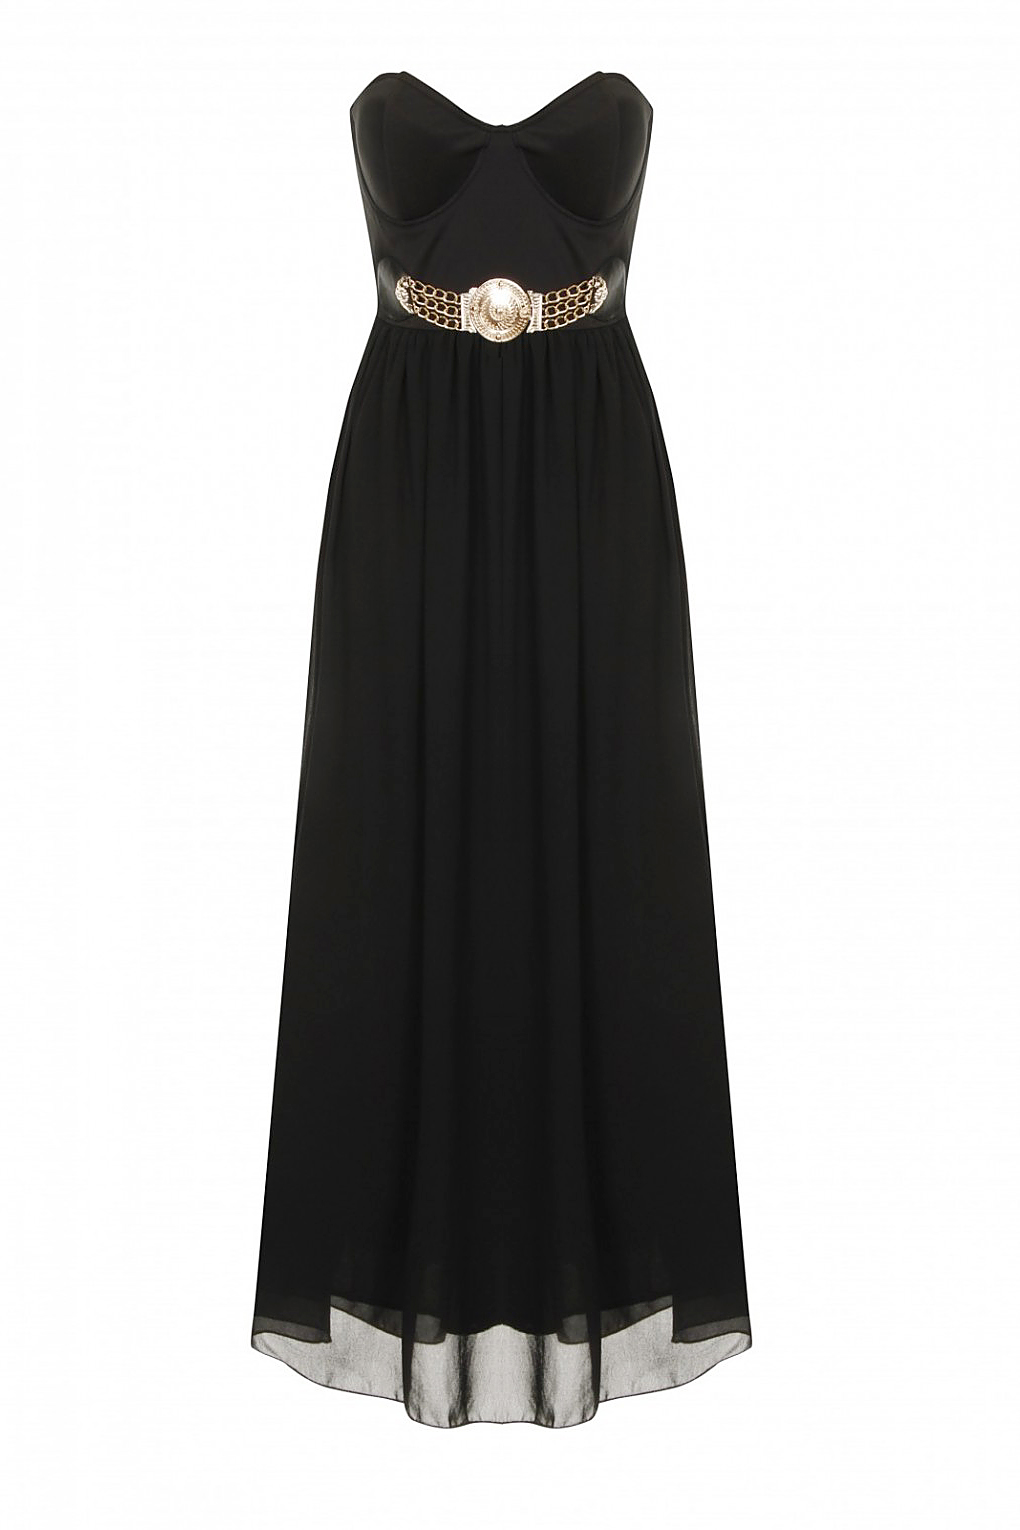 Black Lucy Chiffon Summer Prom Dress